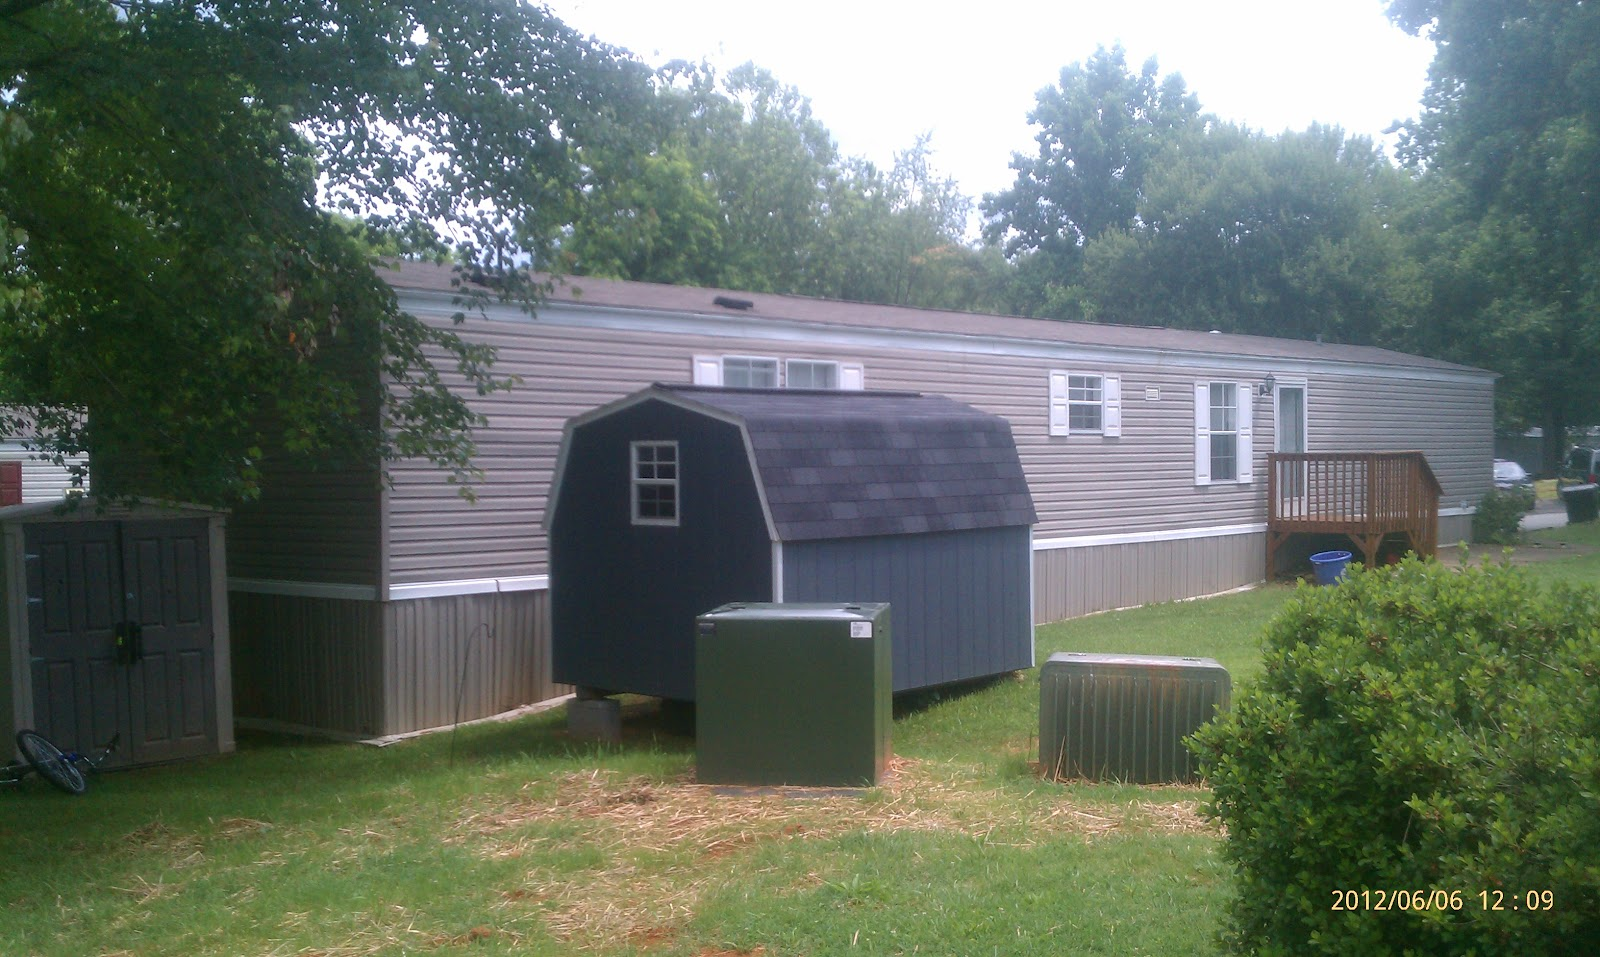 19 wonderful mobile homes for sale in lynchburg va kaf for Home builders in lynchburg va